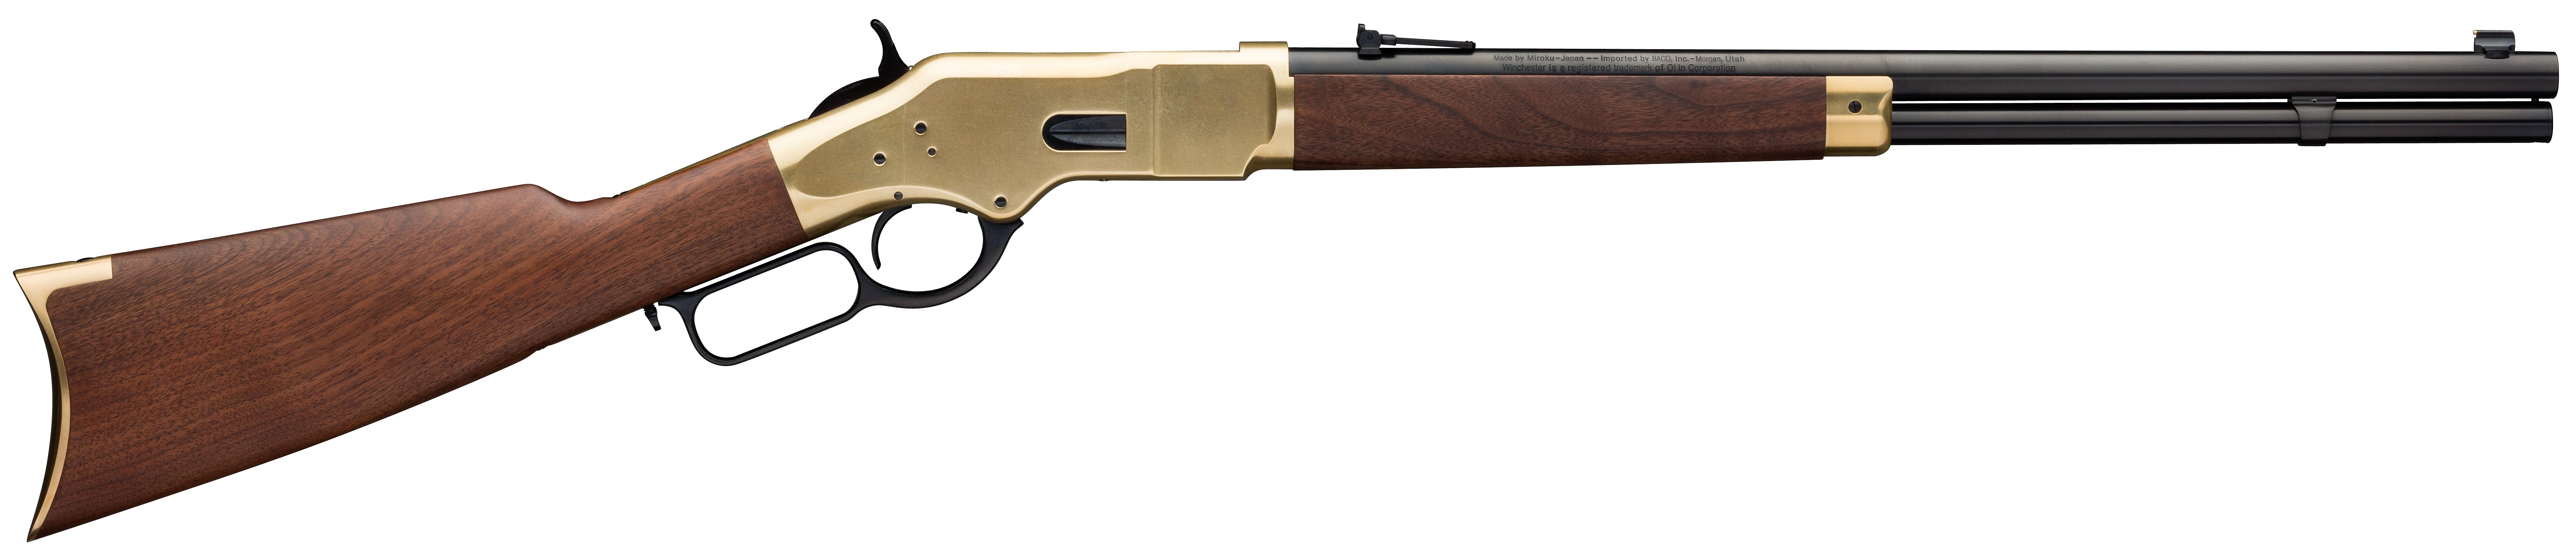 The iconic winchester model 1866 is available in 44 40 win and 38 special calibers new for 2017